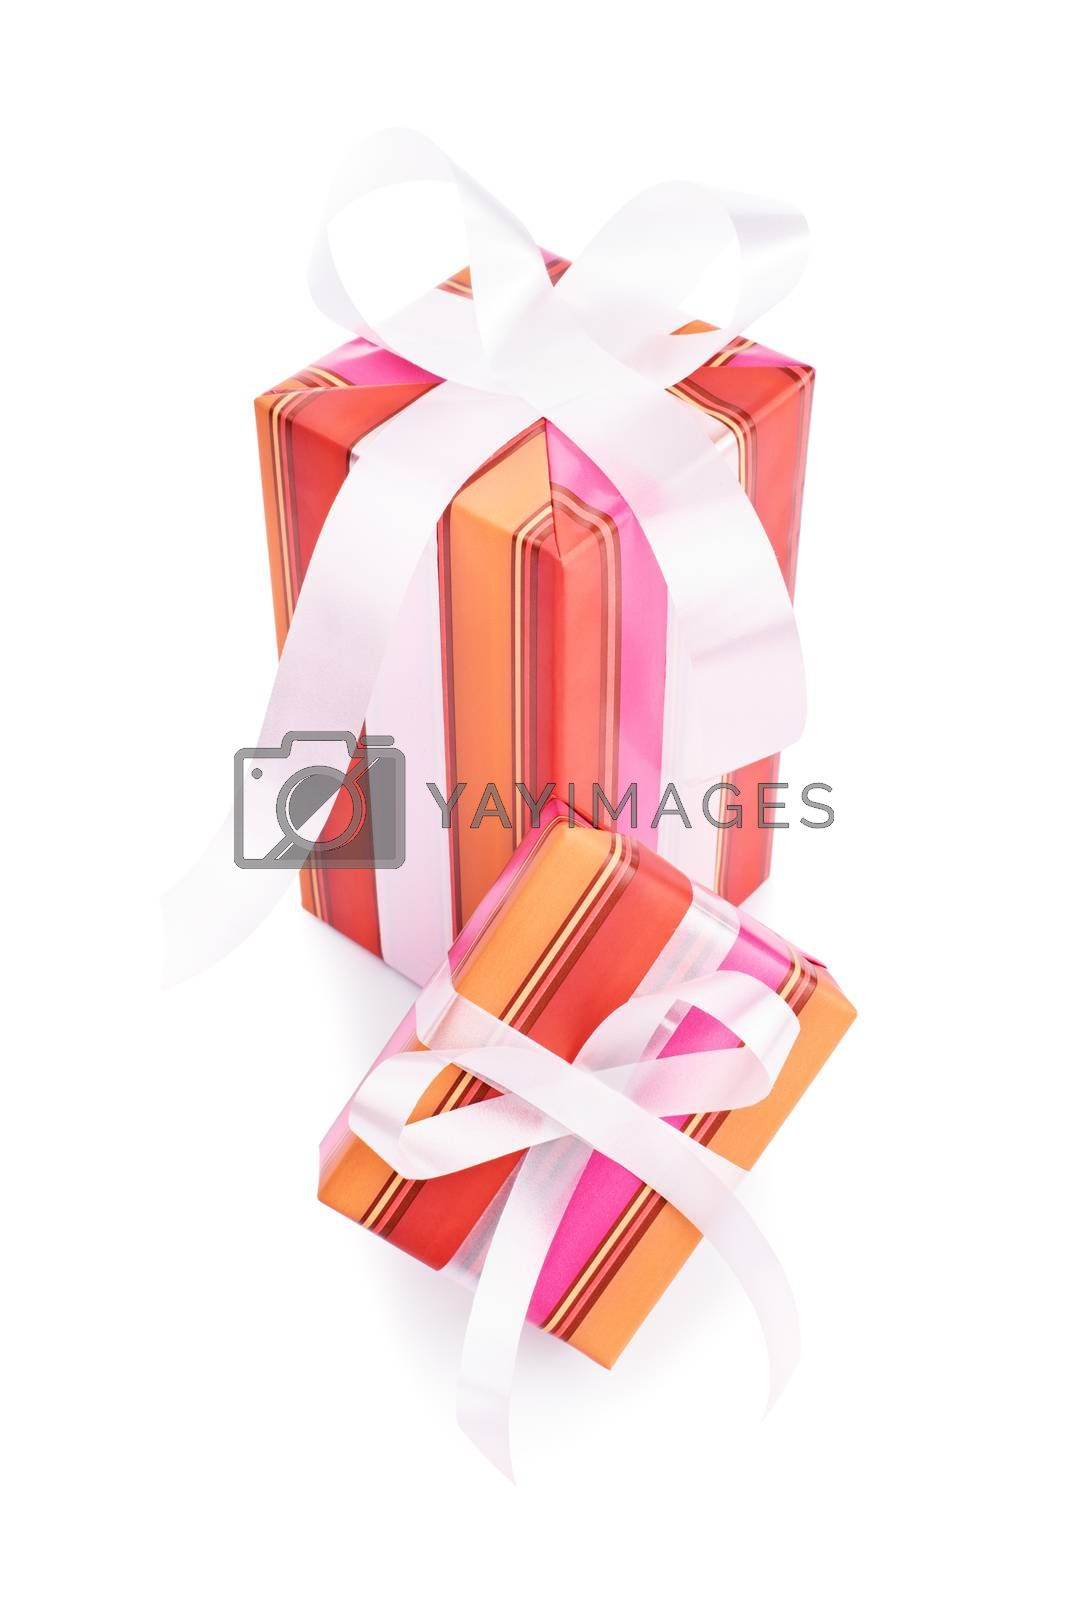 Two gifts wrapped in colorful wrapping paper with white ribbons, isolated on white background.